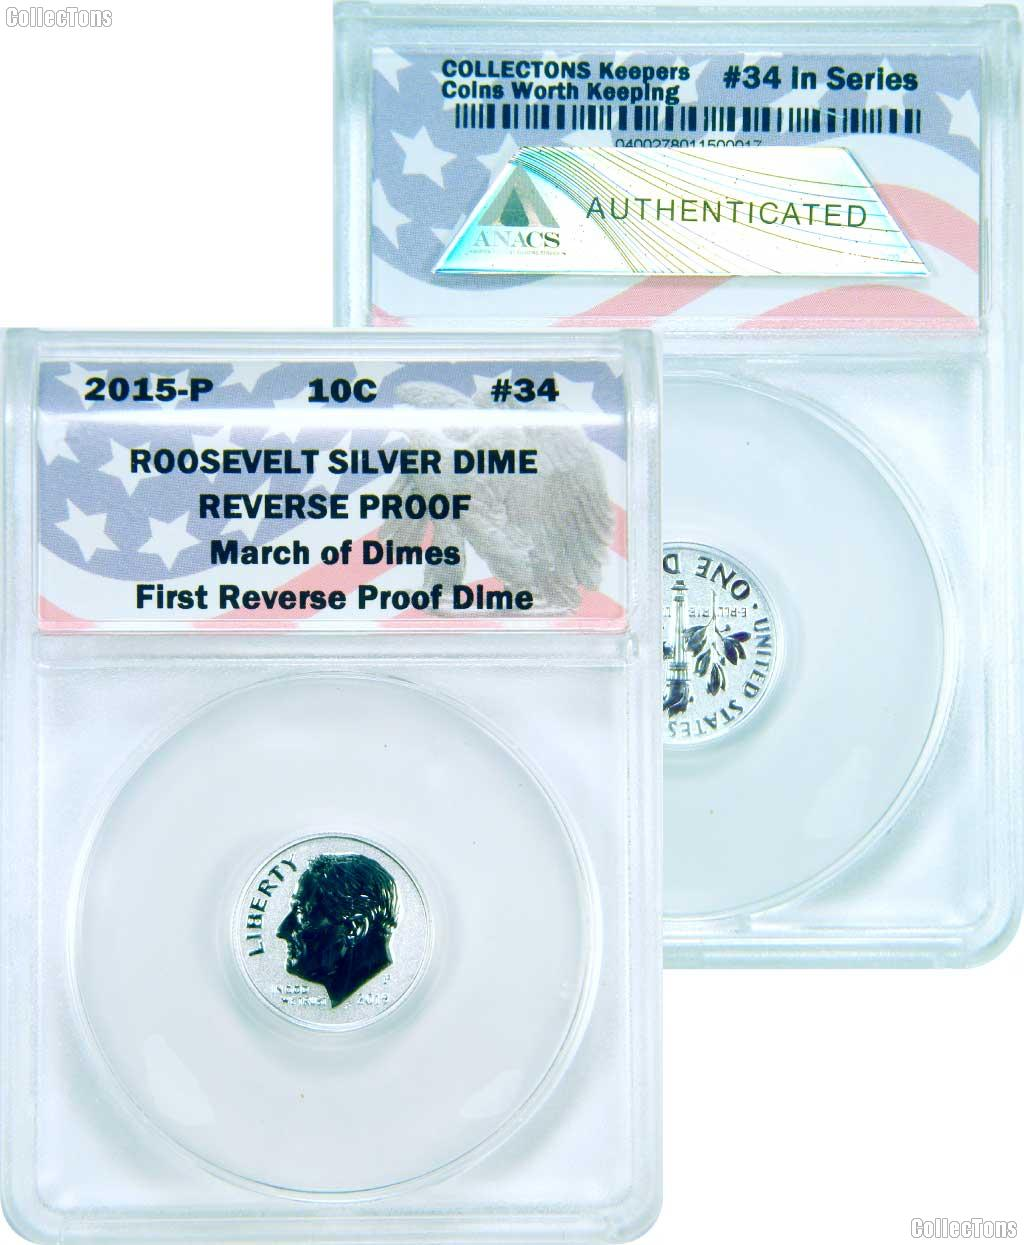 CollecTons Keepers #34: 2015-P Silver Reverse Proof Roosevelt Dime Certified in Exclusive ANACS Holder